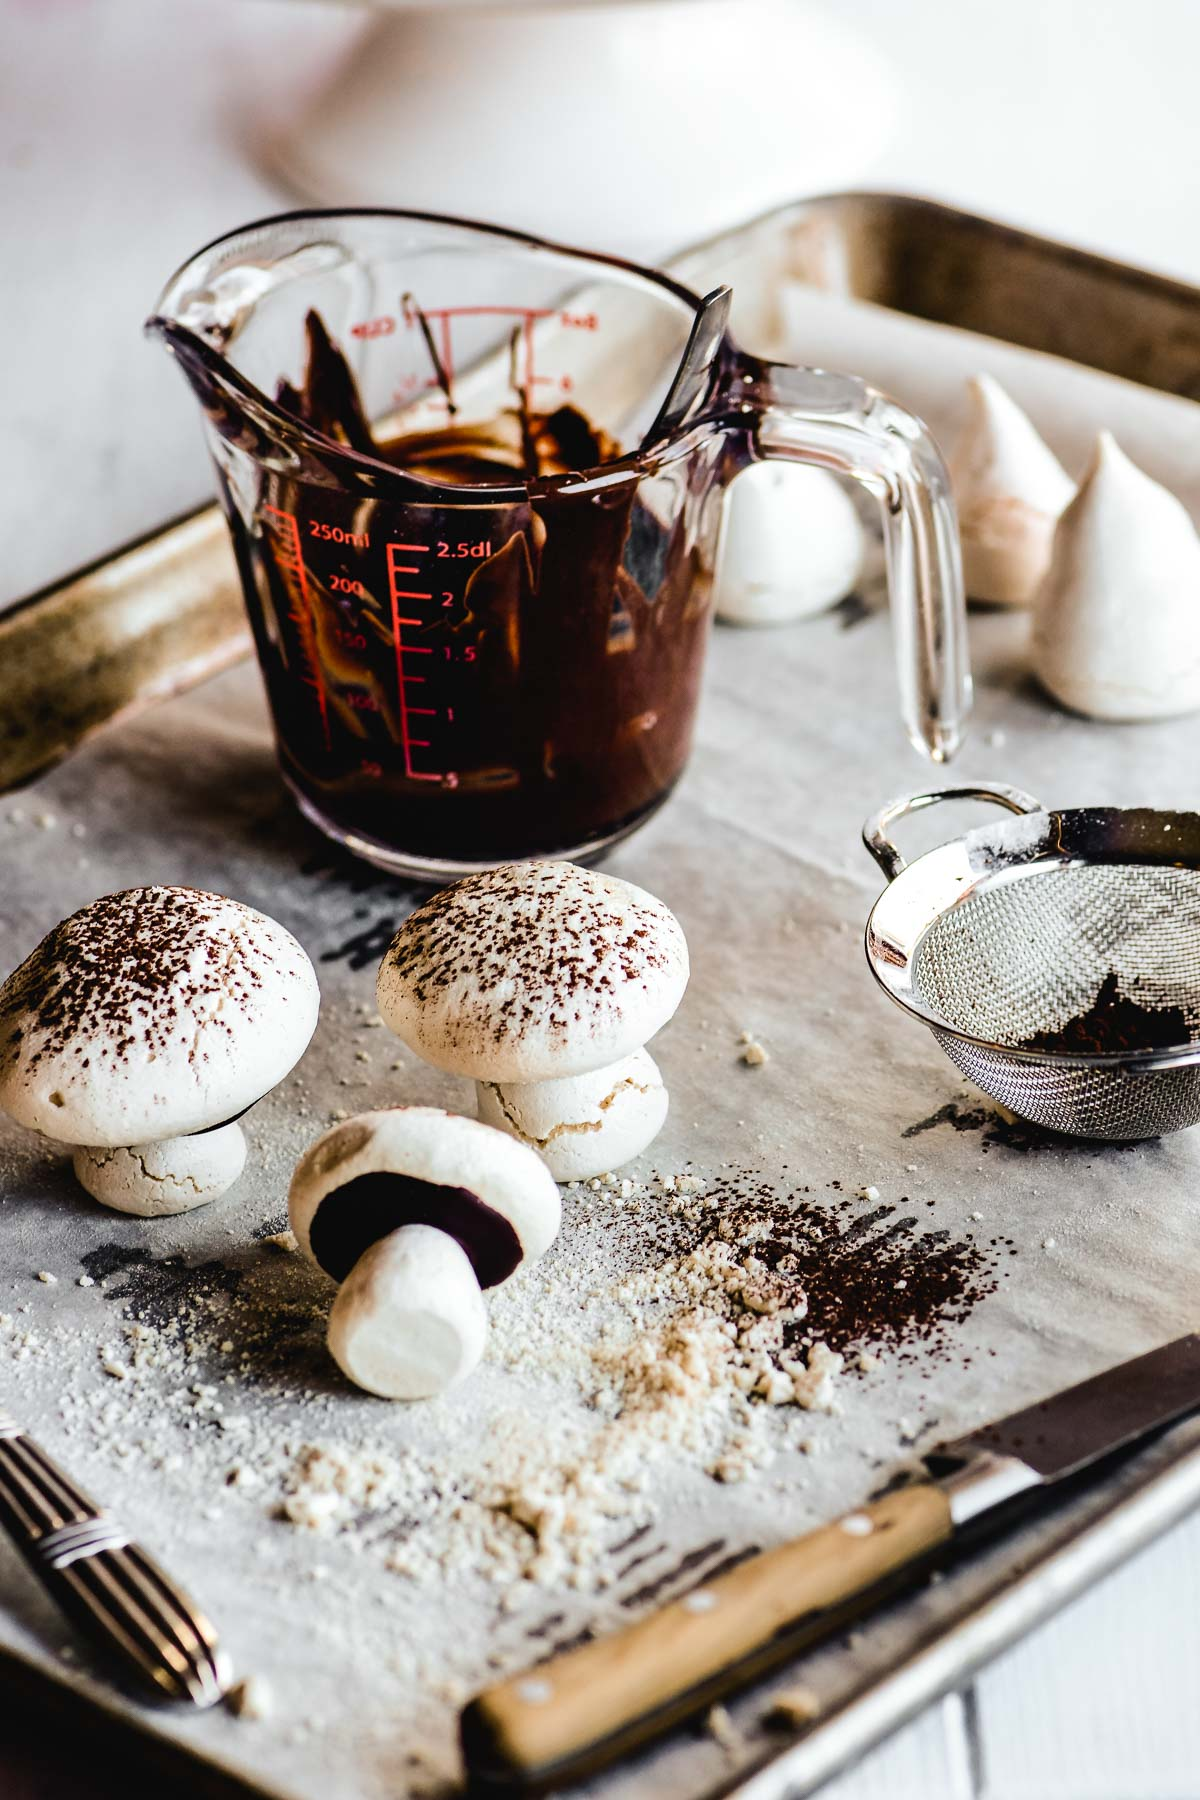 Using melted chocolate to 'glue' together meringue mushroom cookies